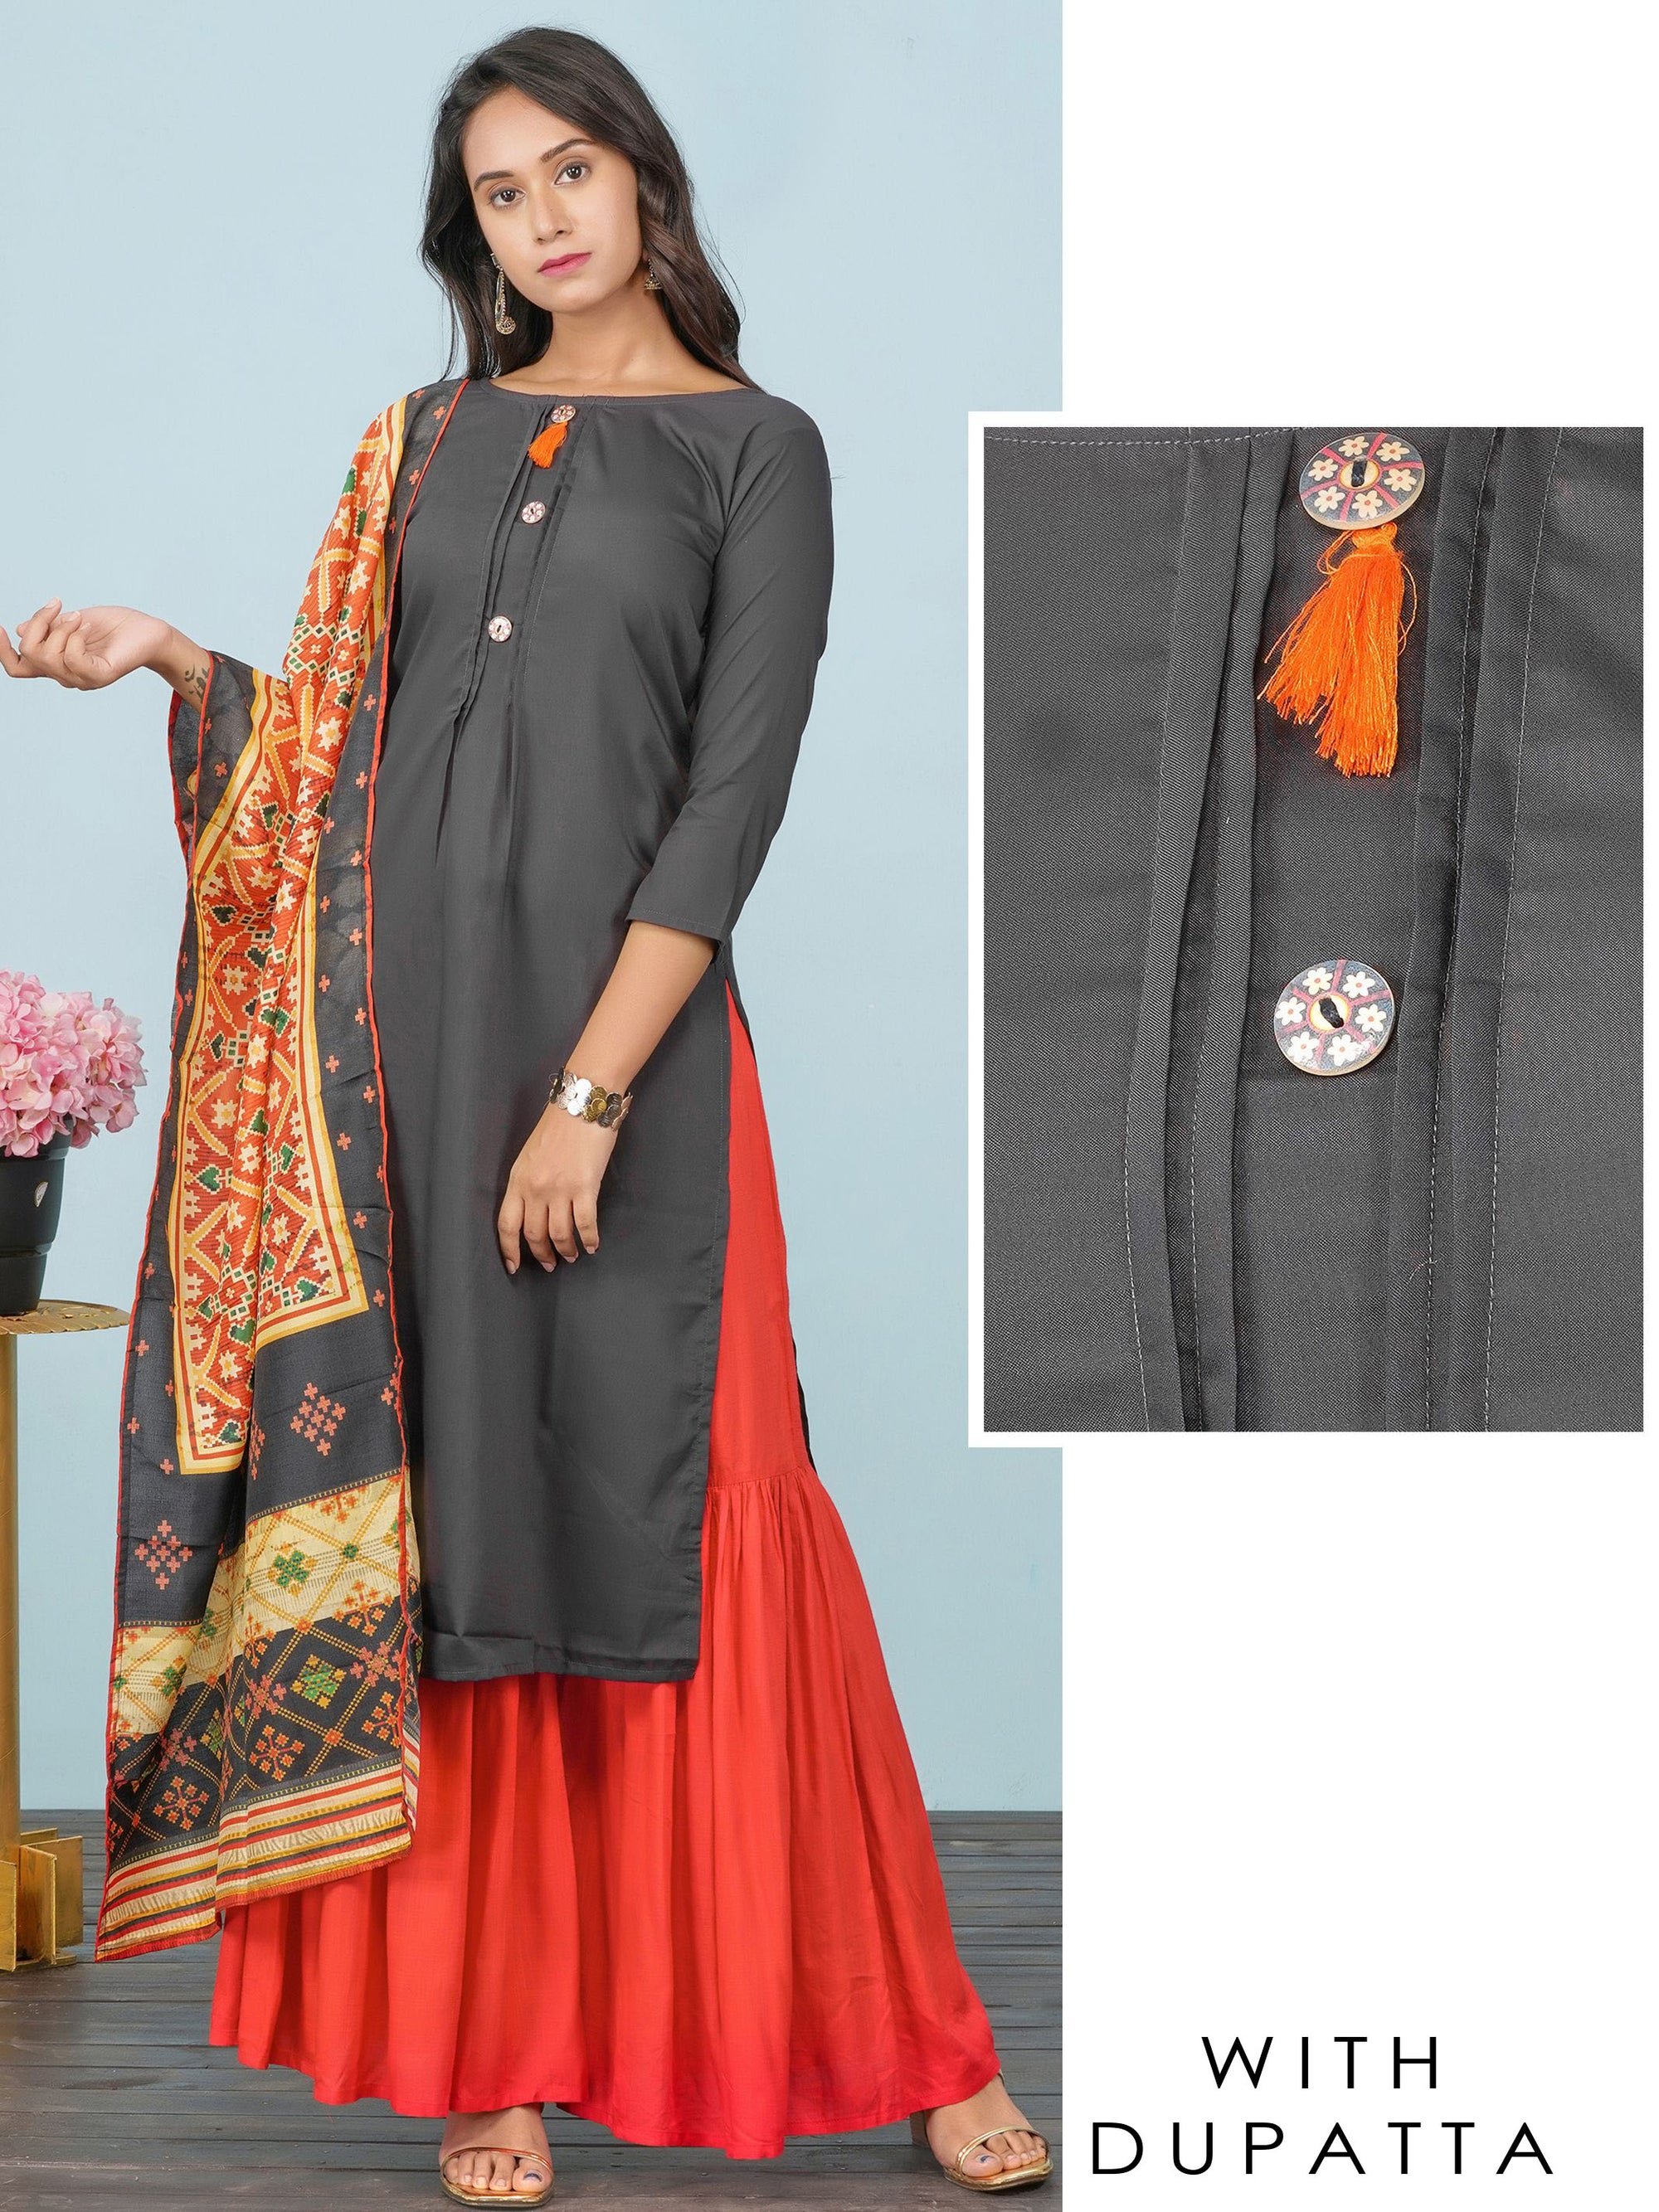 Floral Buttons Enhanced Kurti & Patola Printed Dupatta Set